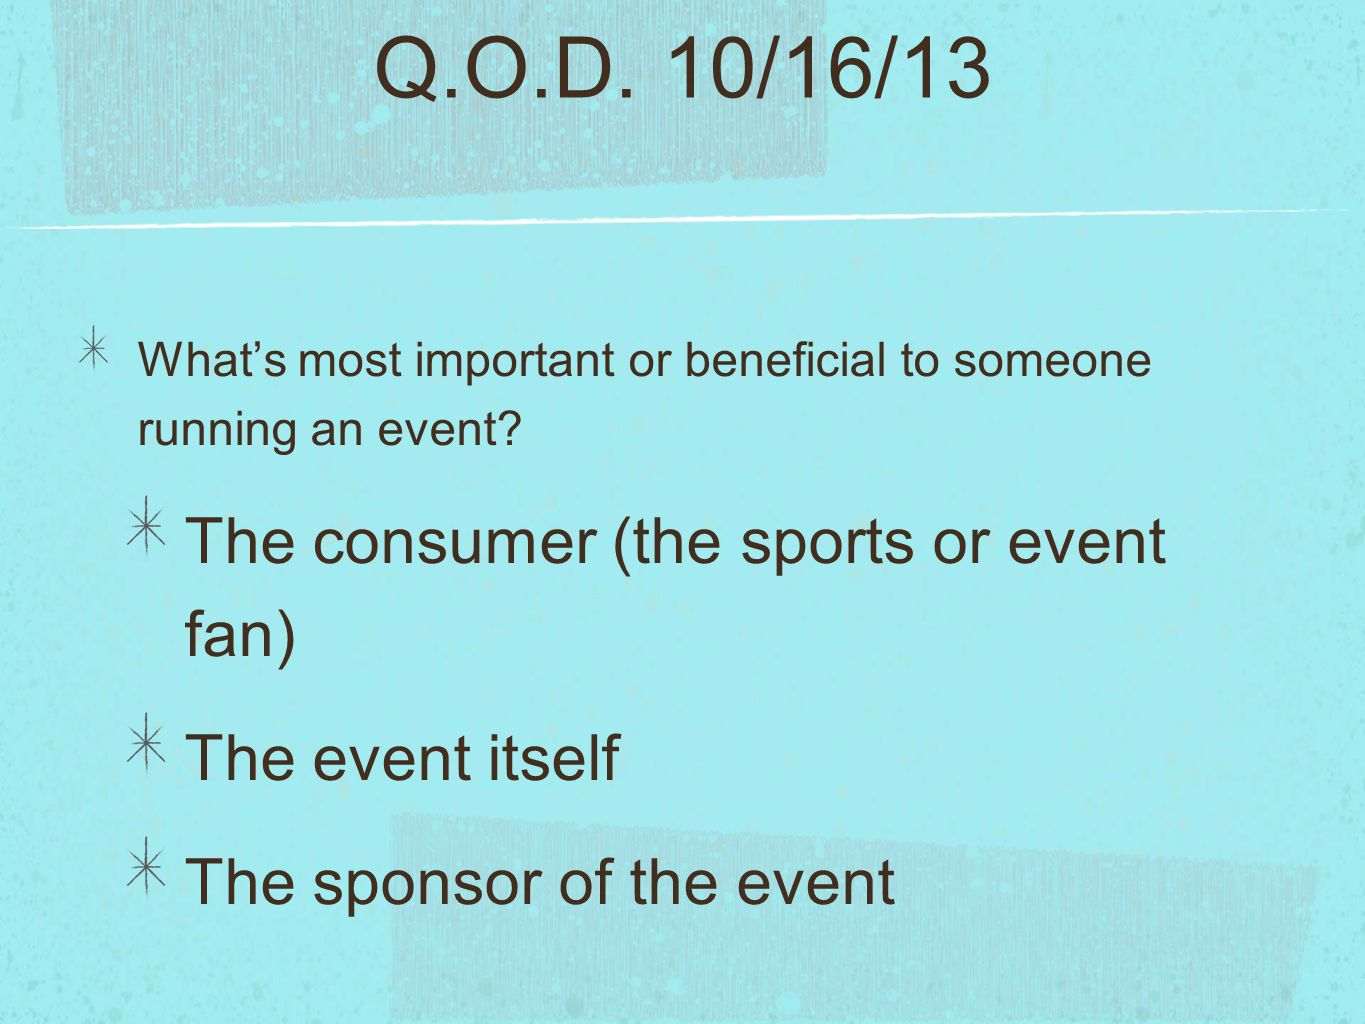 Q.O.D. 10/16/13 What's most important or beneficial to someone running an event? The consumer (the sports or event fan) The event itself The sponsor o